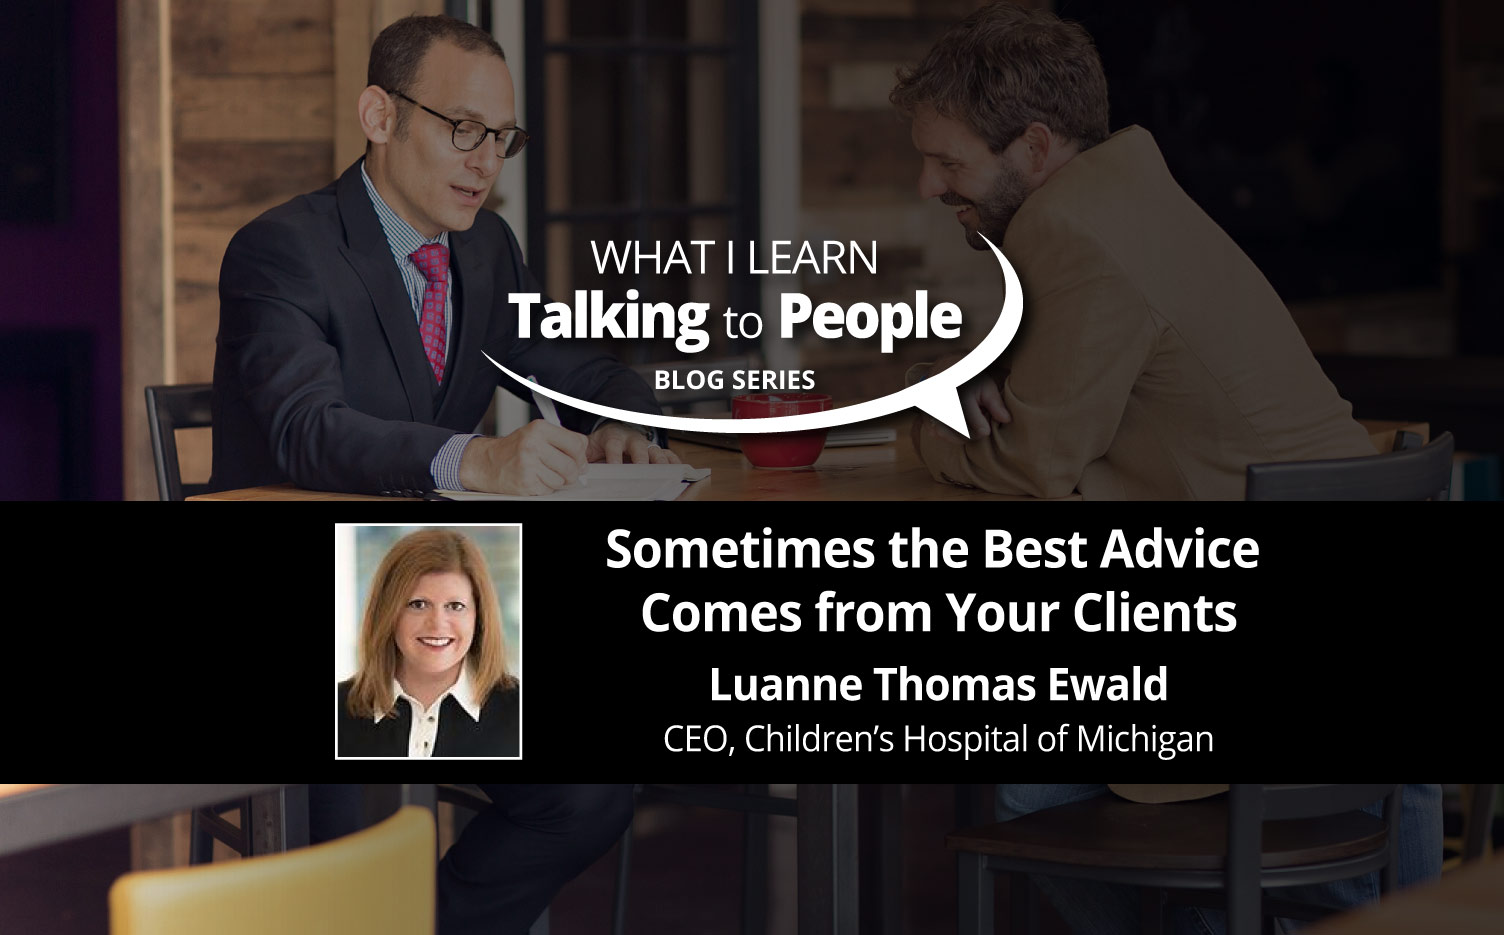 Jon Dwoskin Business Blog:  What I Learn Talking to People Blog: Sometimes the Best Advice Comes from Your Clients